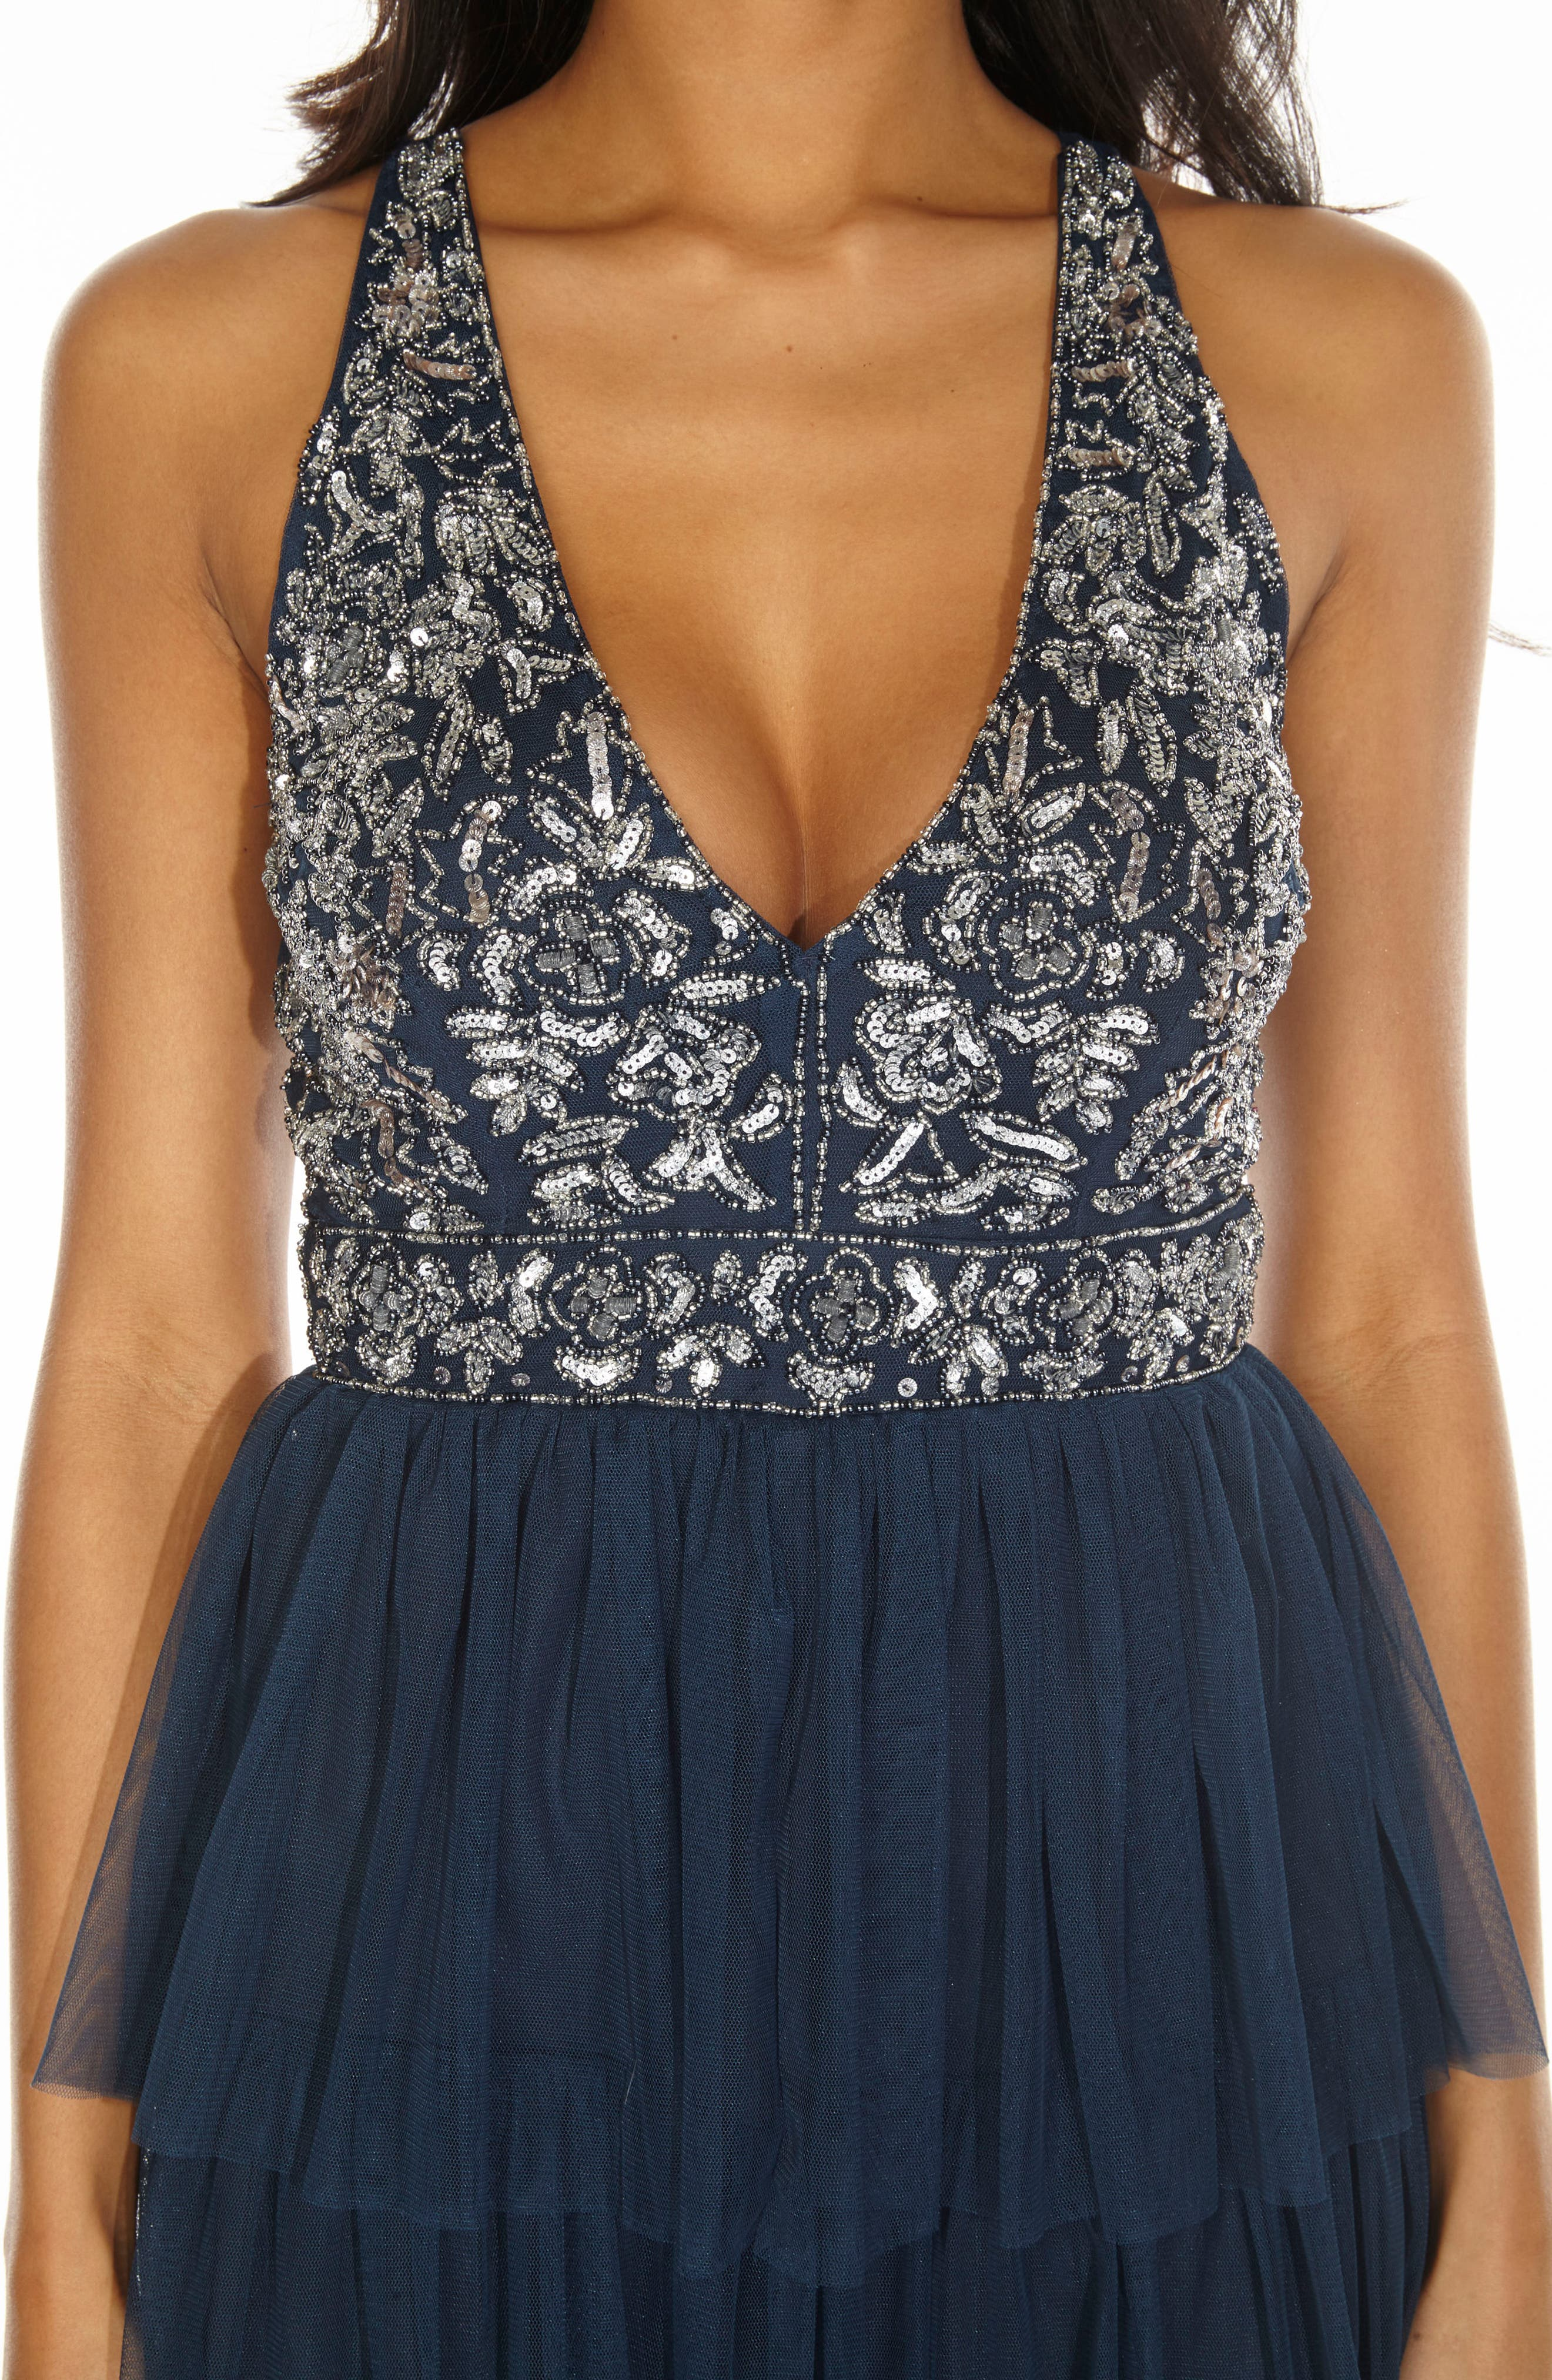 Embellished Tiered Fit & Flare Dress,                             Alternate thumbnail 3, color,                             Navy